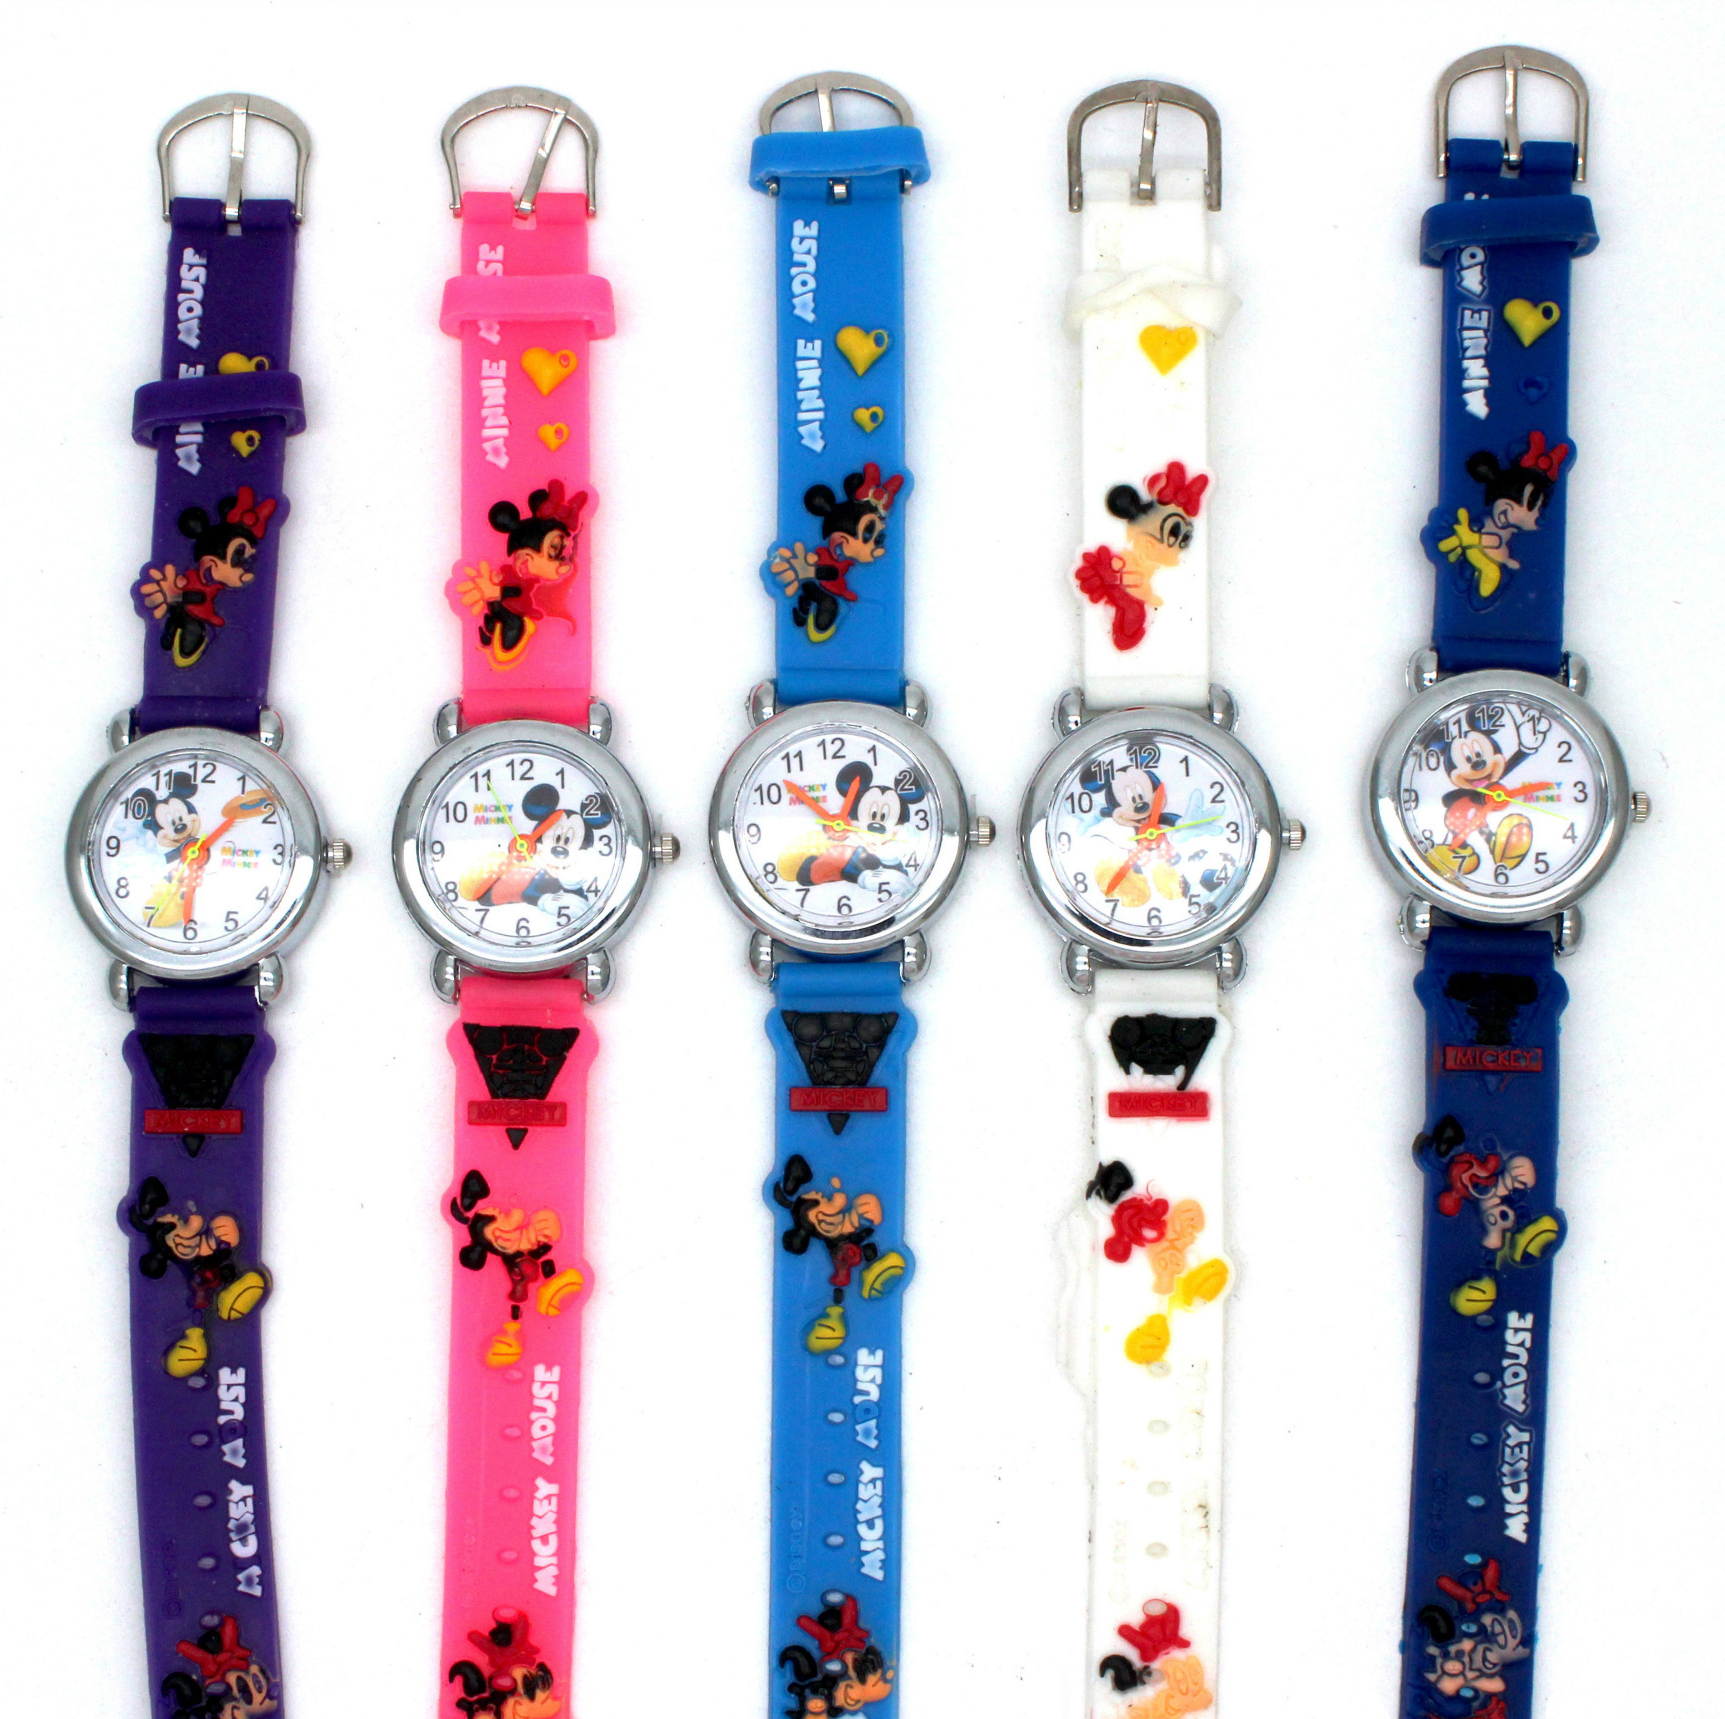 Disney Mickey Cartoon Children's Quartz Wristwatch Silicone Band Watches Animation Character Quartz Student Table Silicone